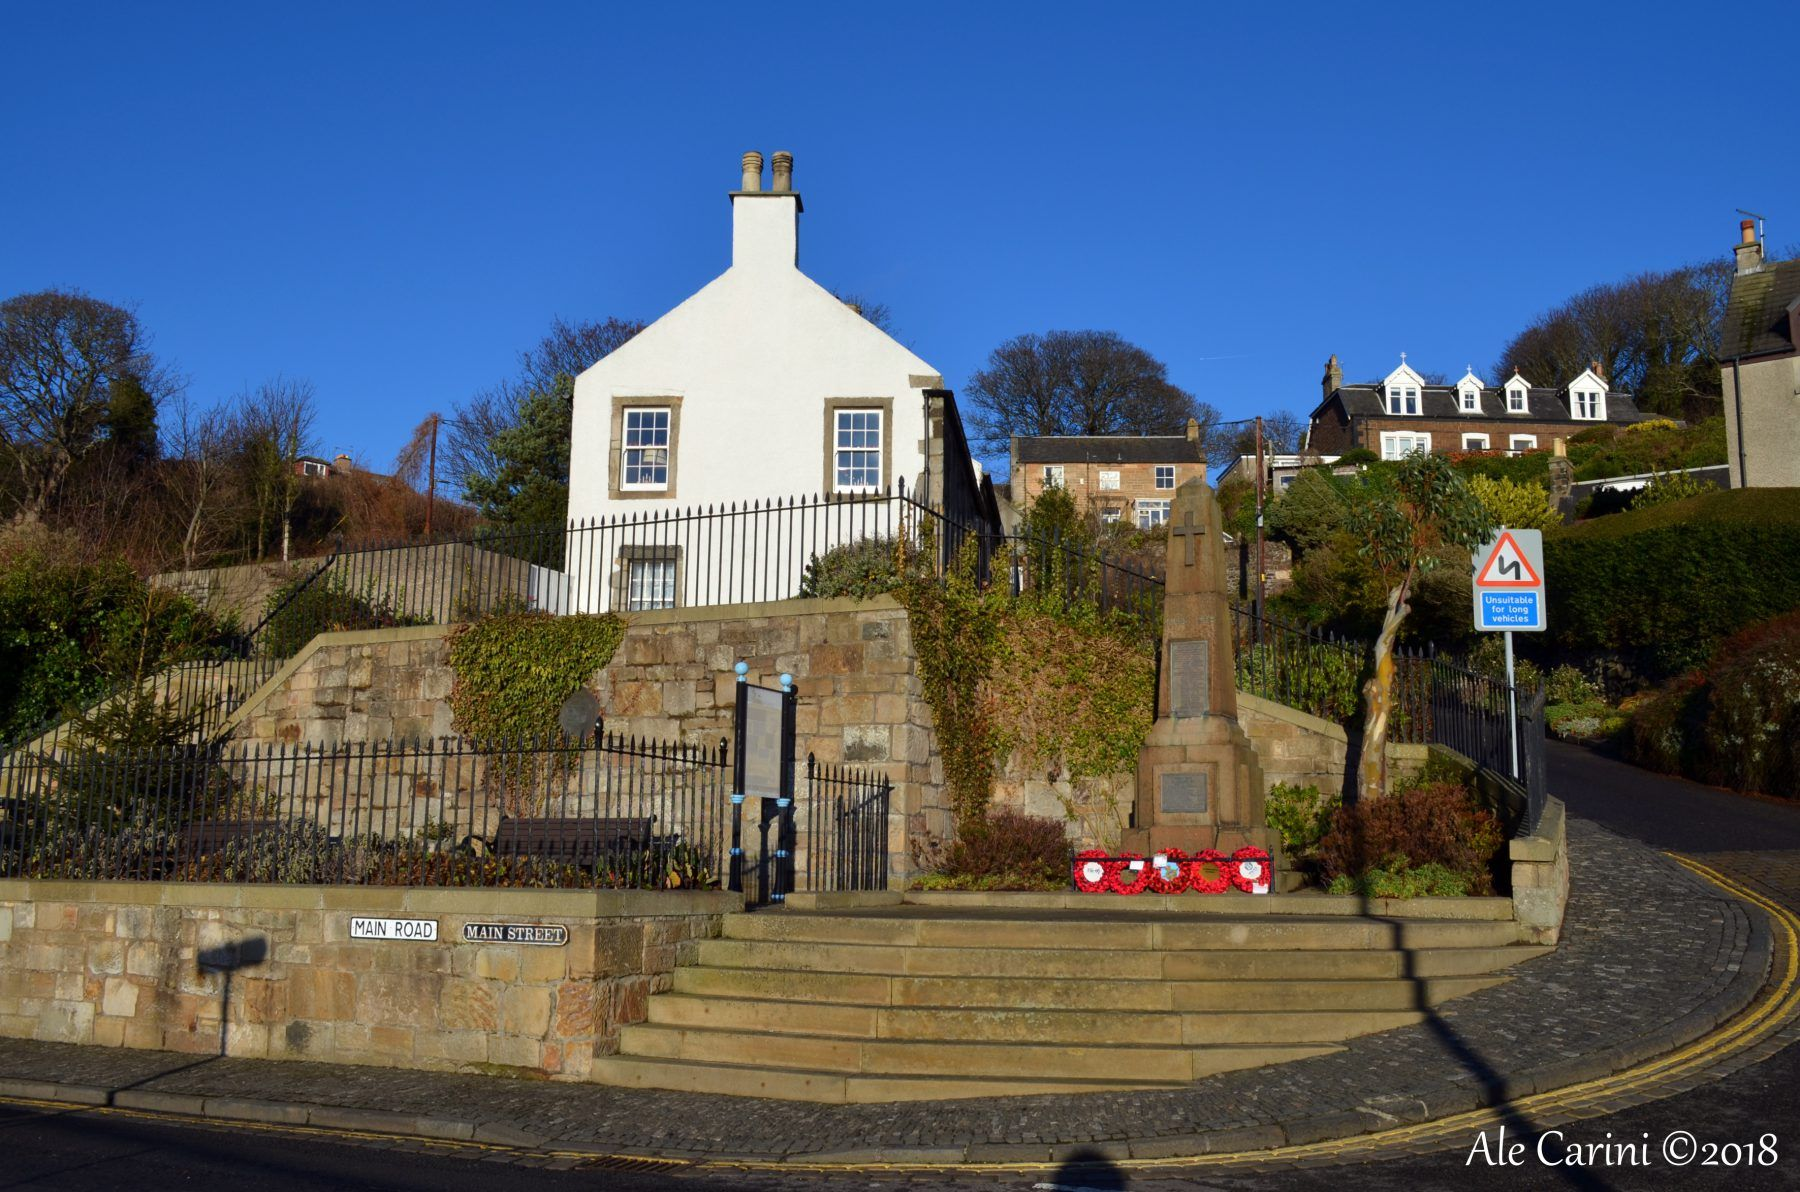 north queensferry, scozia